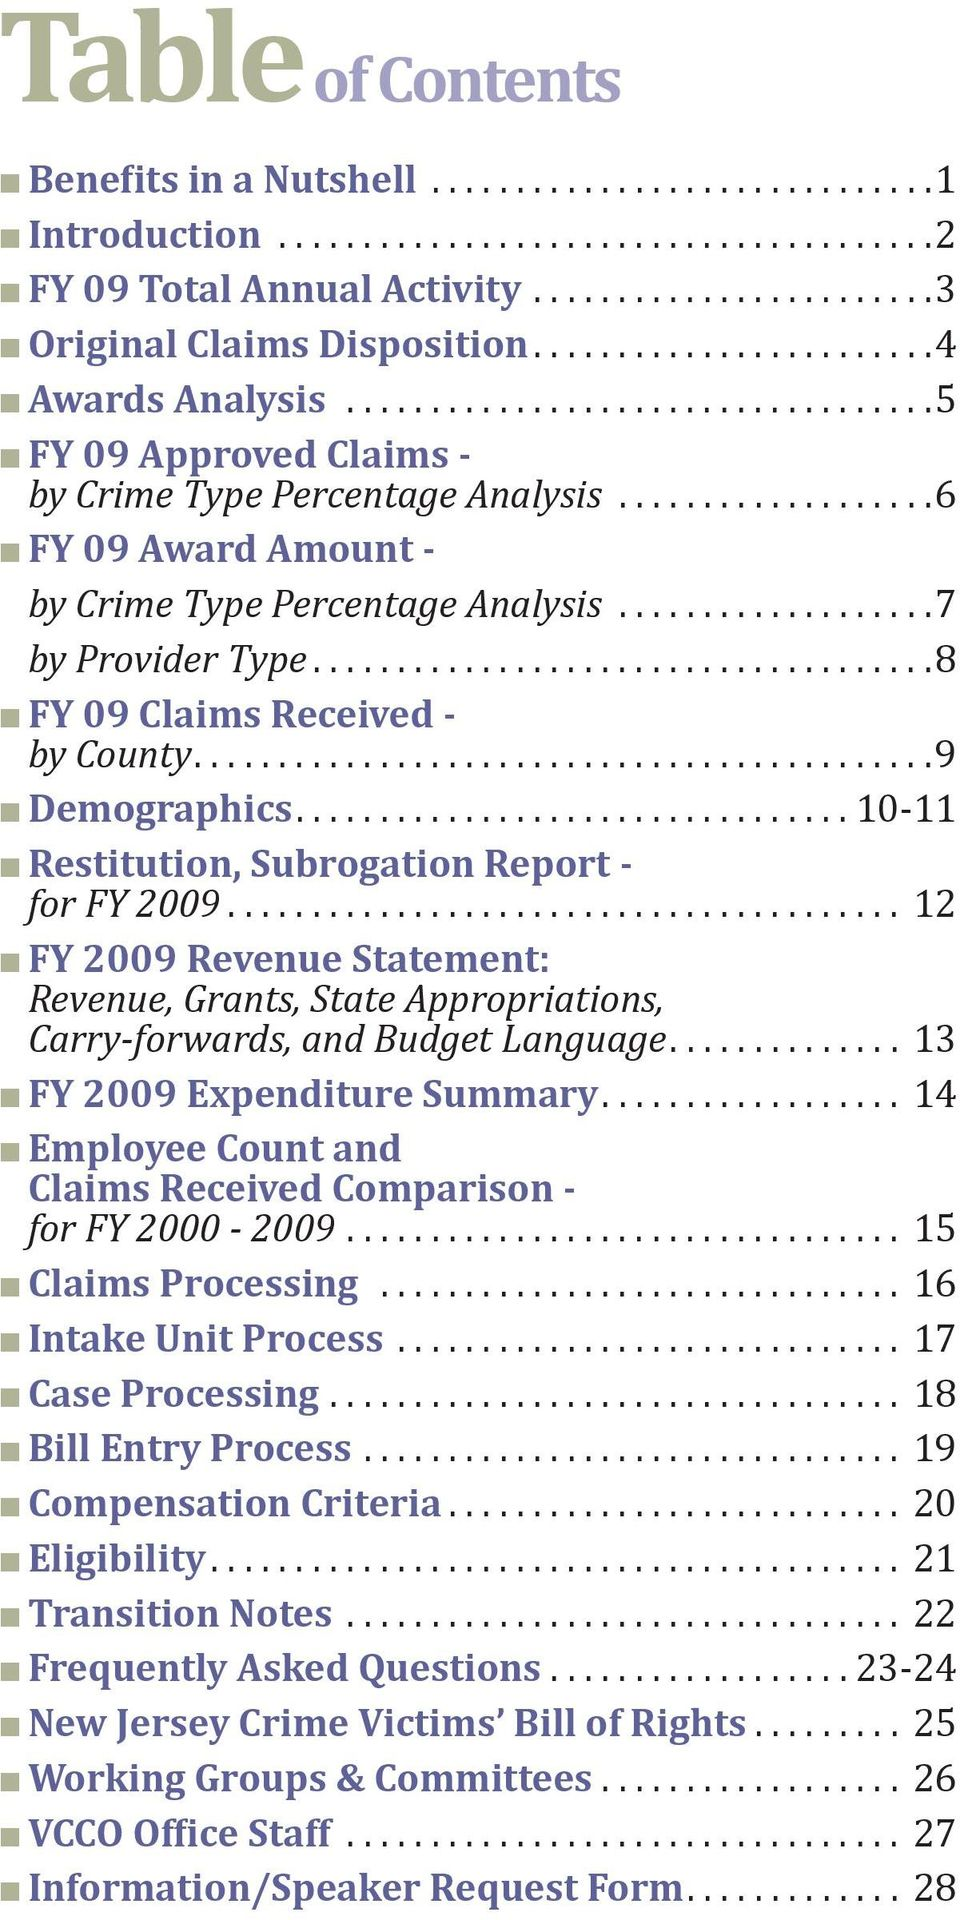 .. 10-11 Restitution, Subrogation Report - for FY 2009... 12 FY 2009 Revenue Statement: Revenue, Grants, State Appropriations, Carry-forwards, and Budget Language... 13 FY 2009 Expenditure Summary.